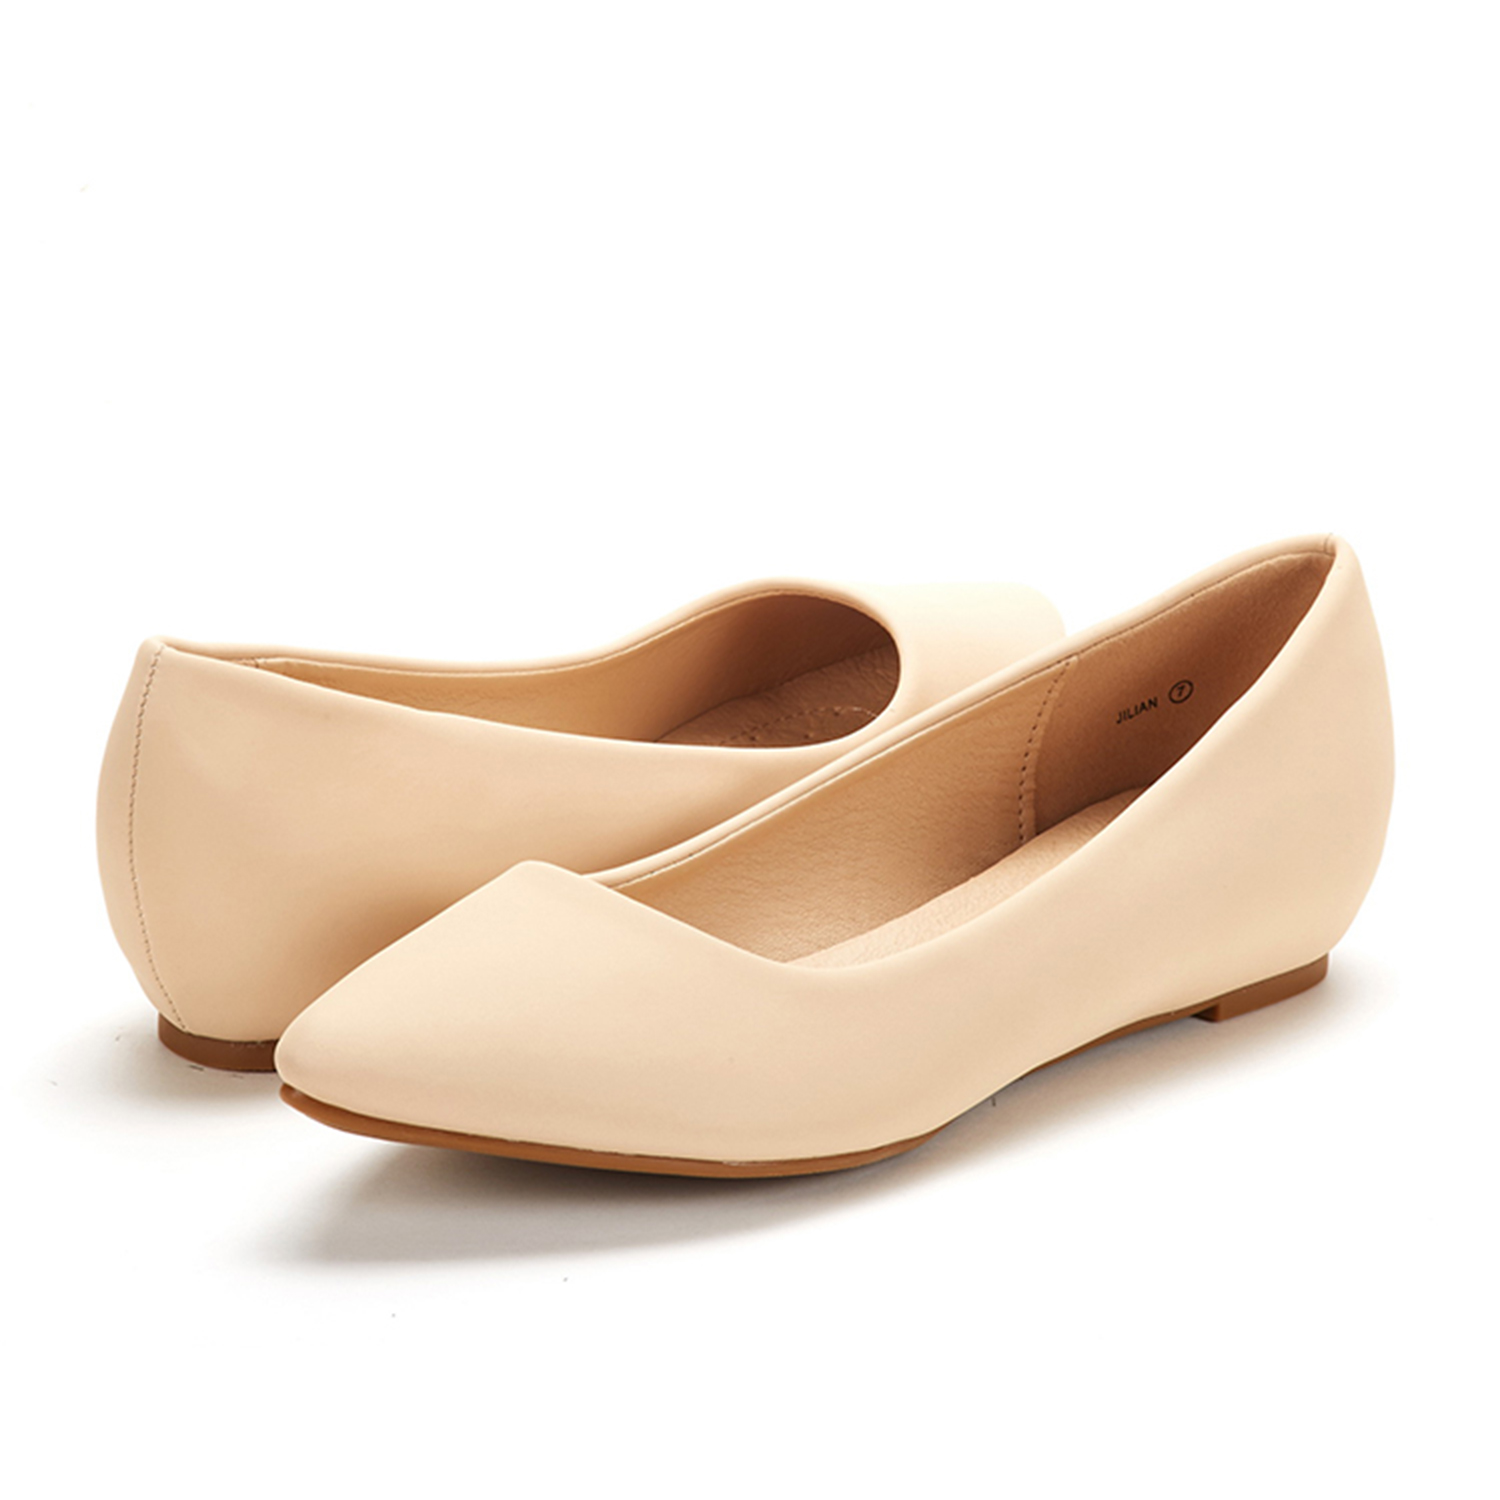 DREAM-PAIRS-Women-Low-Wedge-Flats-Ladies-Pointed-Toe-Slip-On-Comfort-Flat-Shoes thumbnail 67